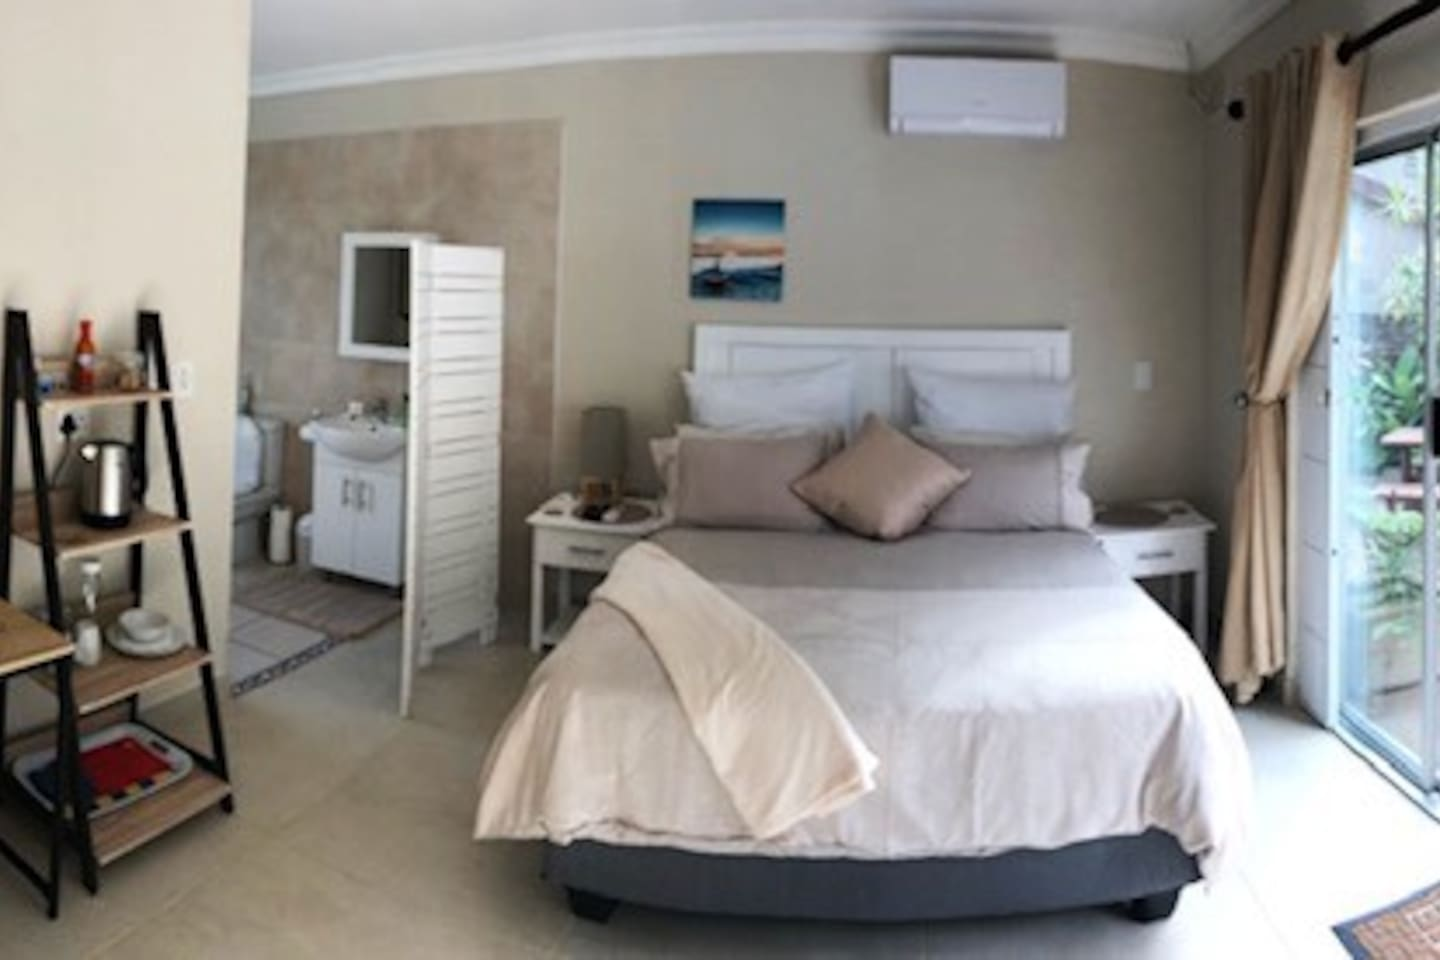 Air-con, queen size bed, sea views and swimming pool views from your bed